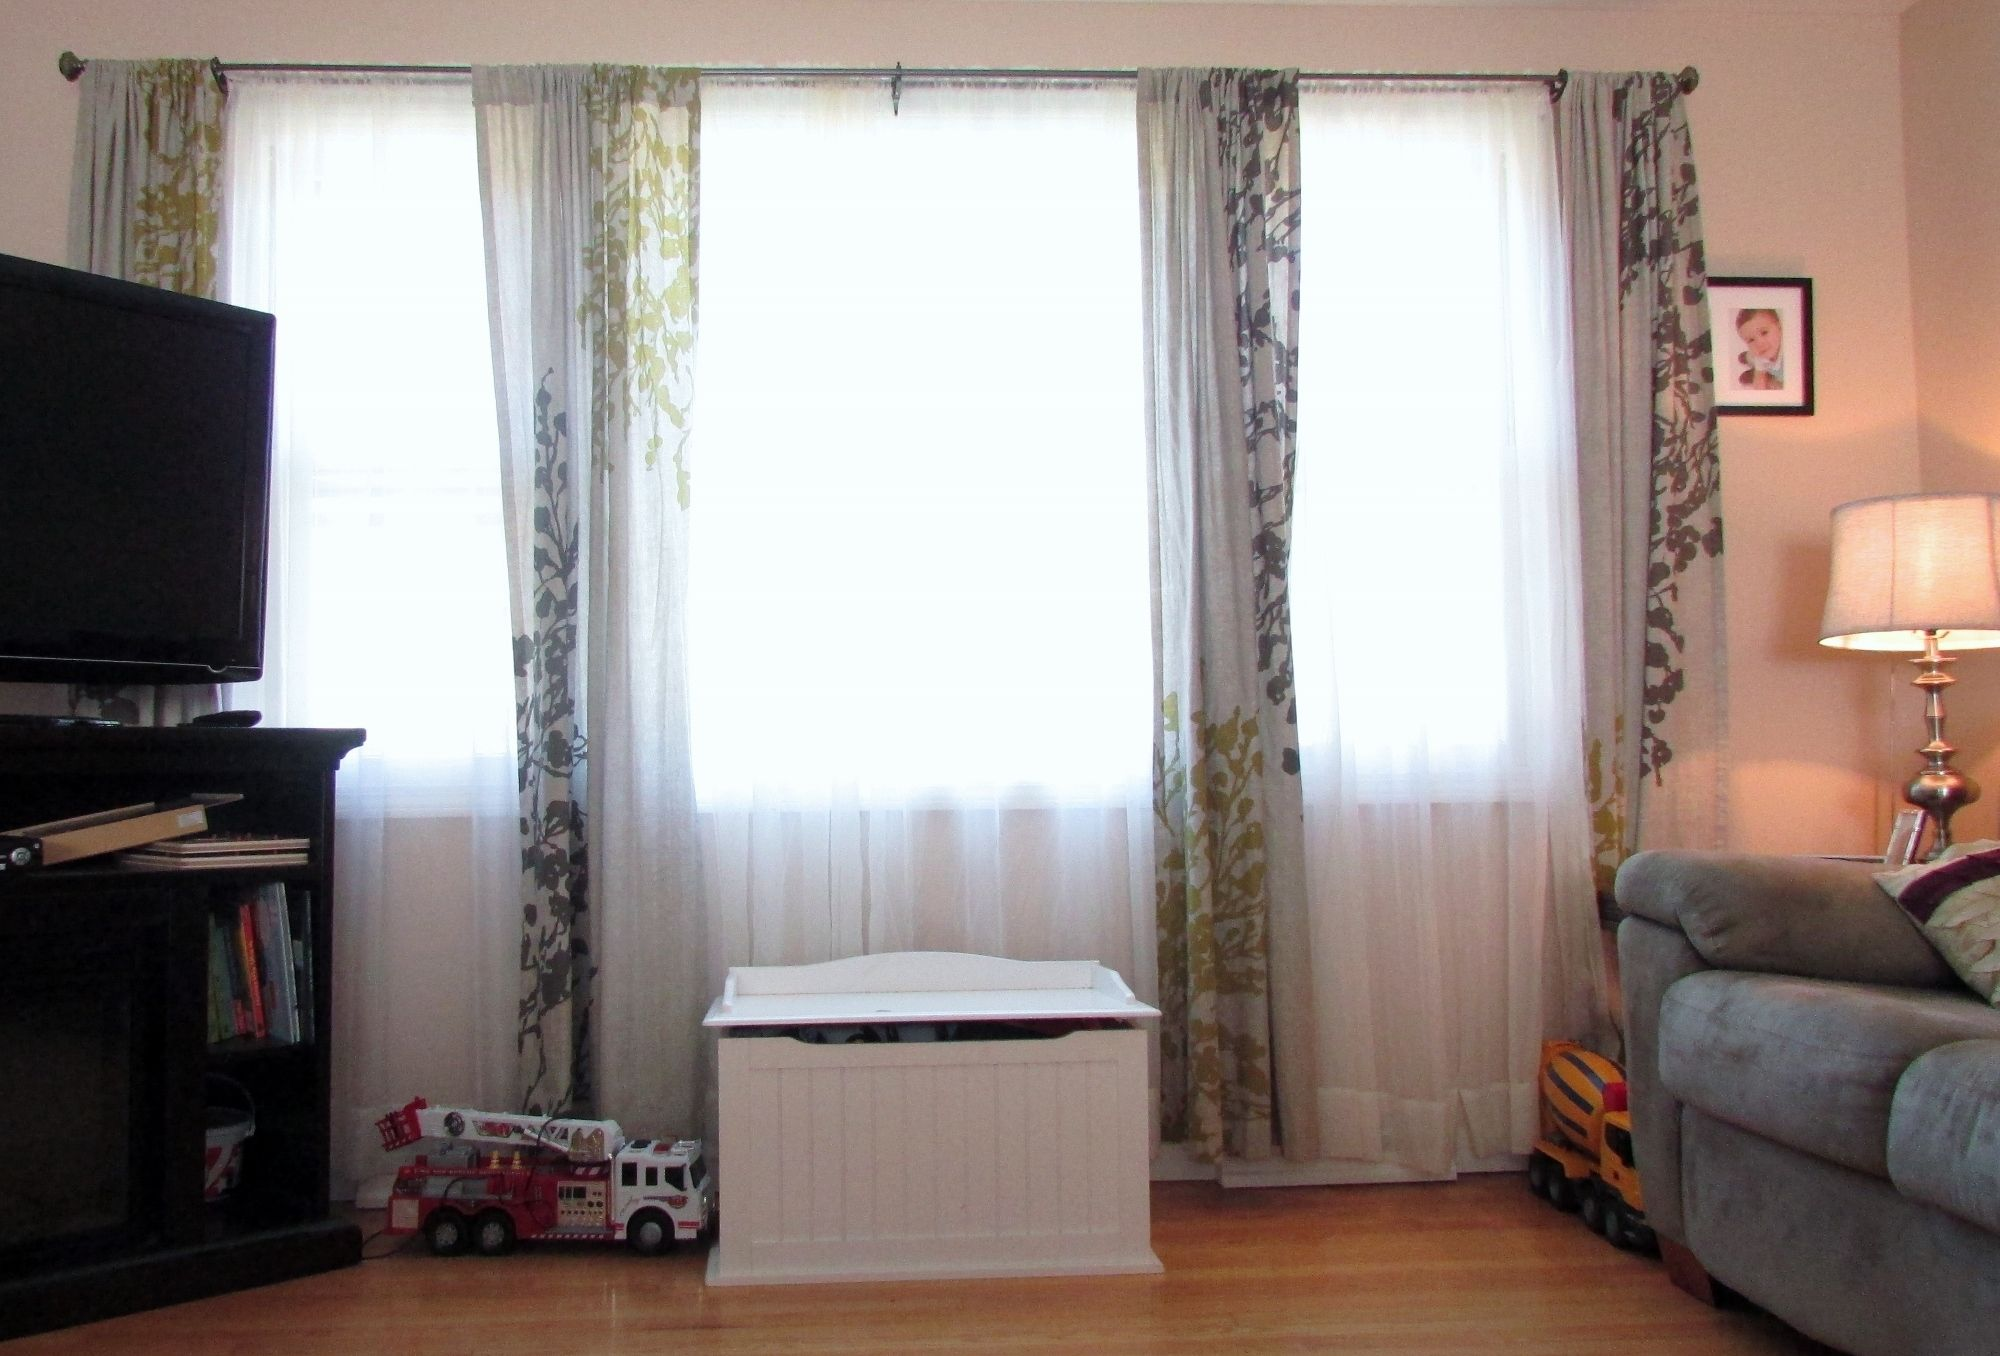 Bed bath and beyond window shades  curtains over wide windows  realtagfo  pinterest